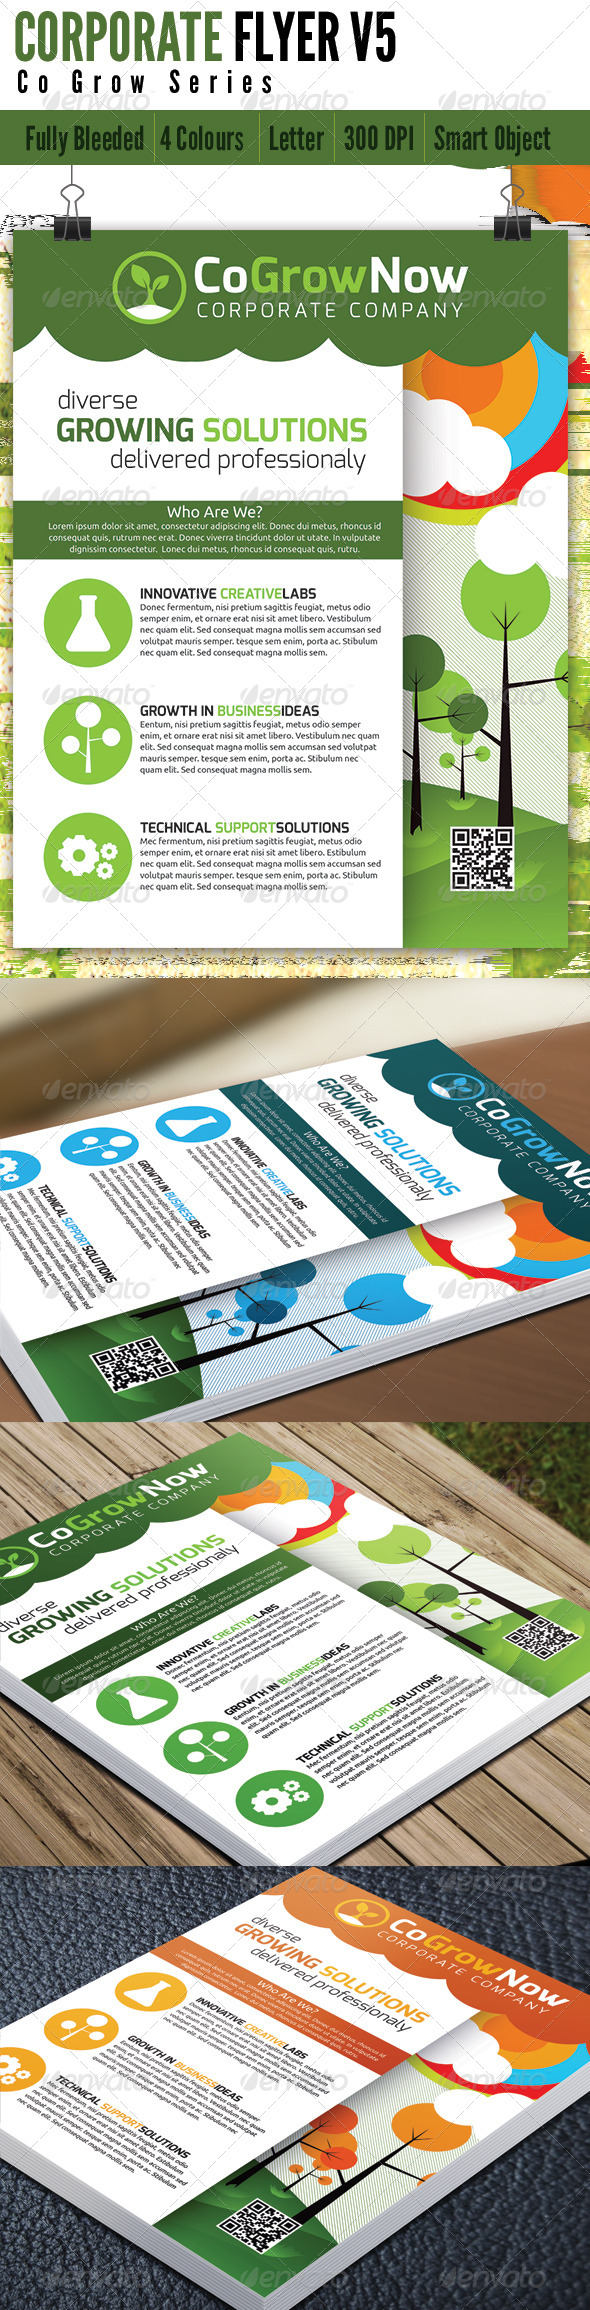 Corporate Flyer V5 - Corporate Flyers